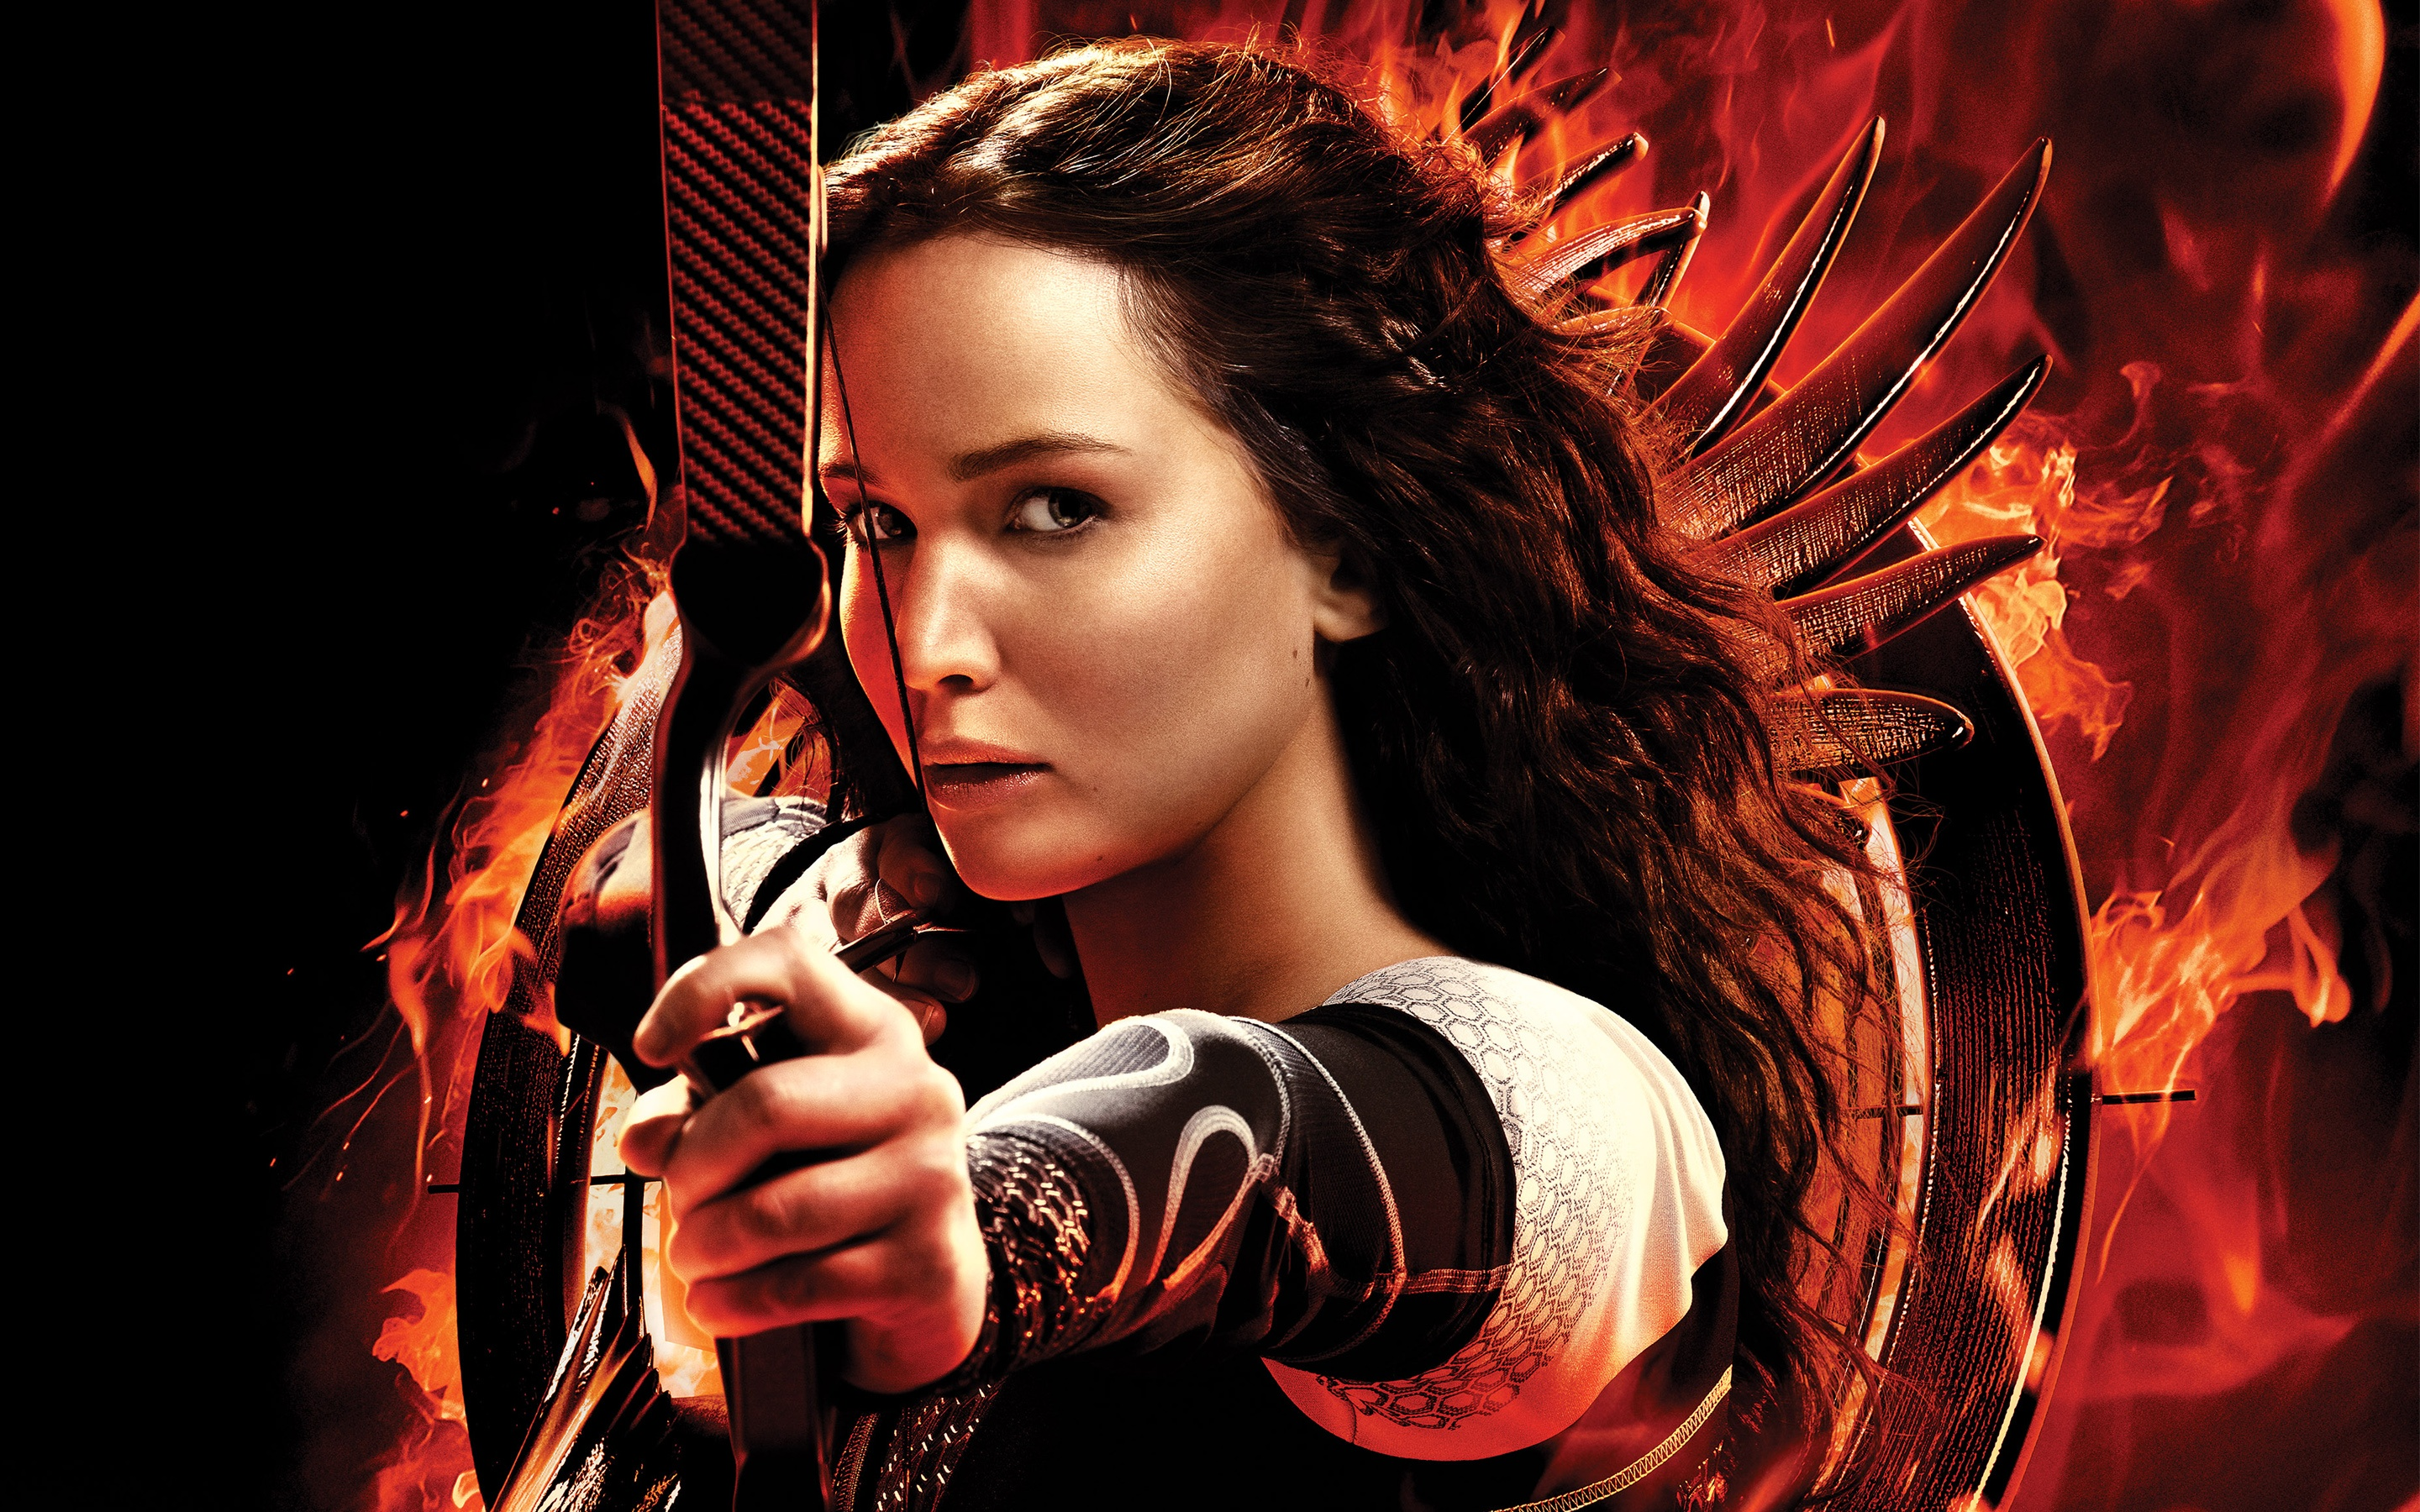 Katniss Jennifer Lawrence Wallpapers in jpg format for download 2880x1800